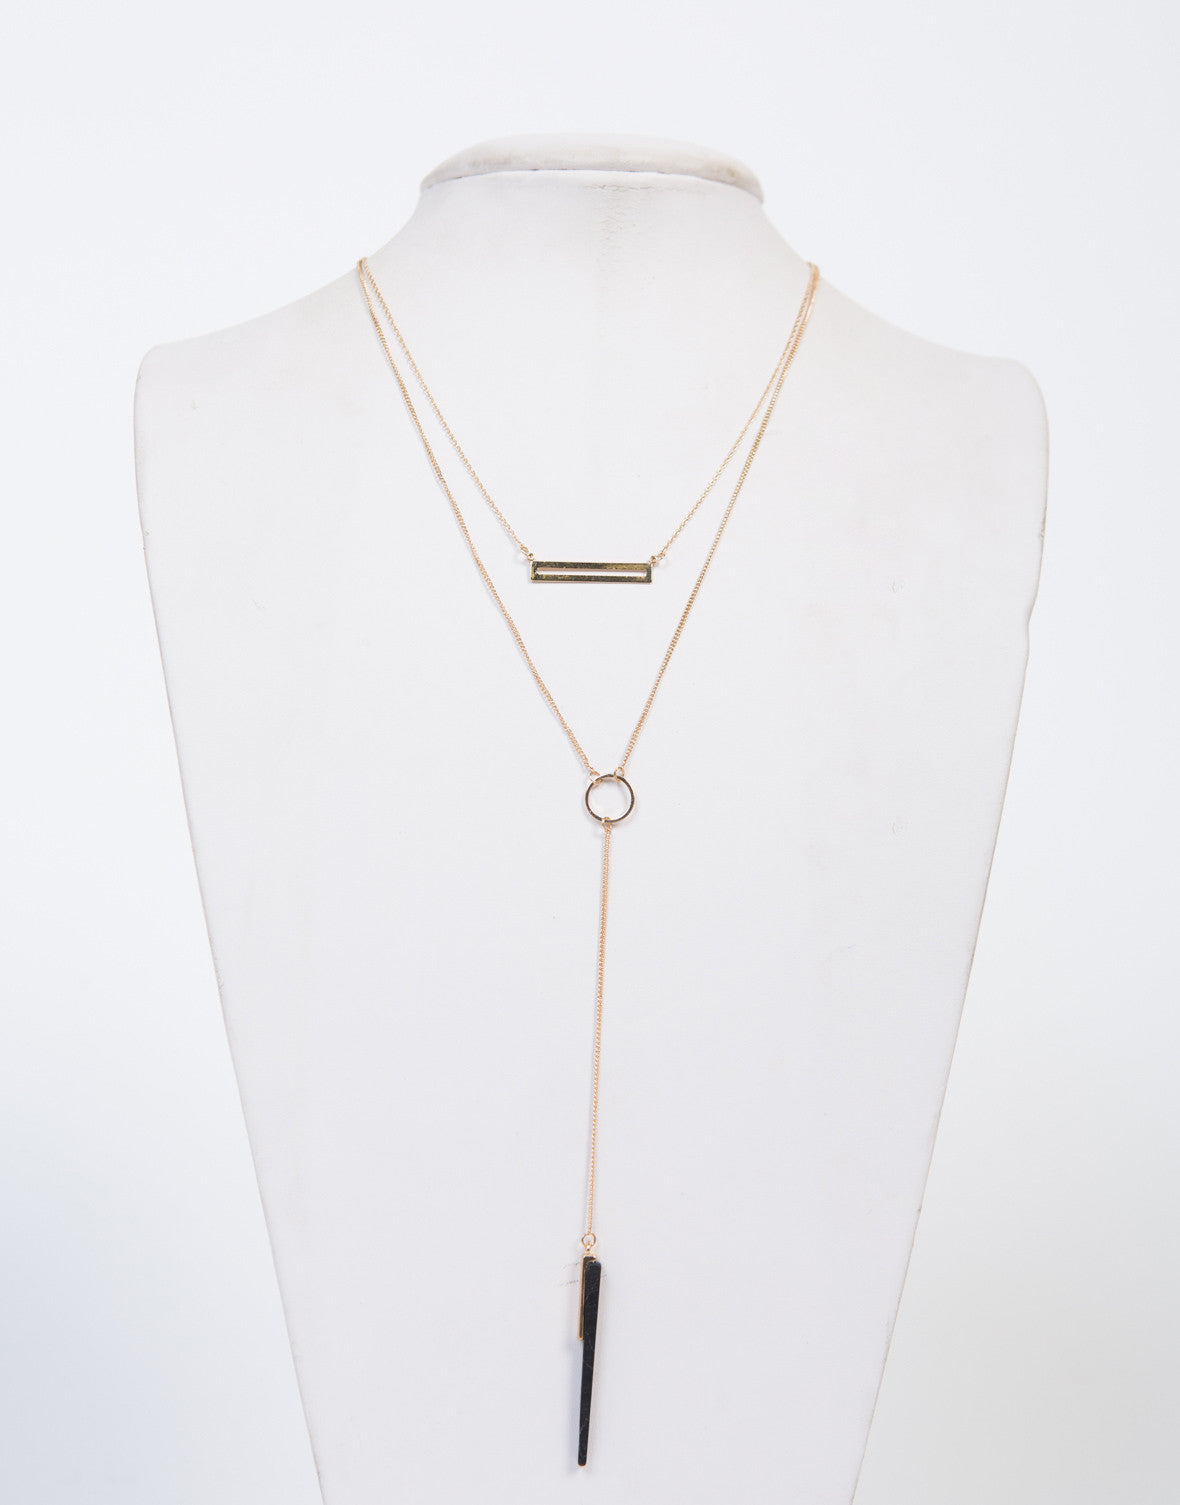 Stone Layered Dainty Necklace